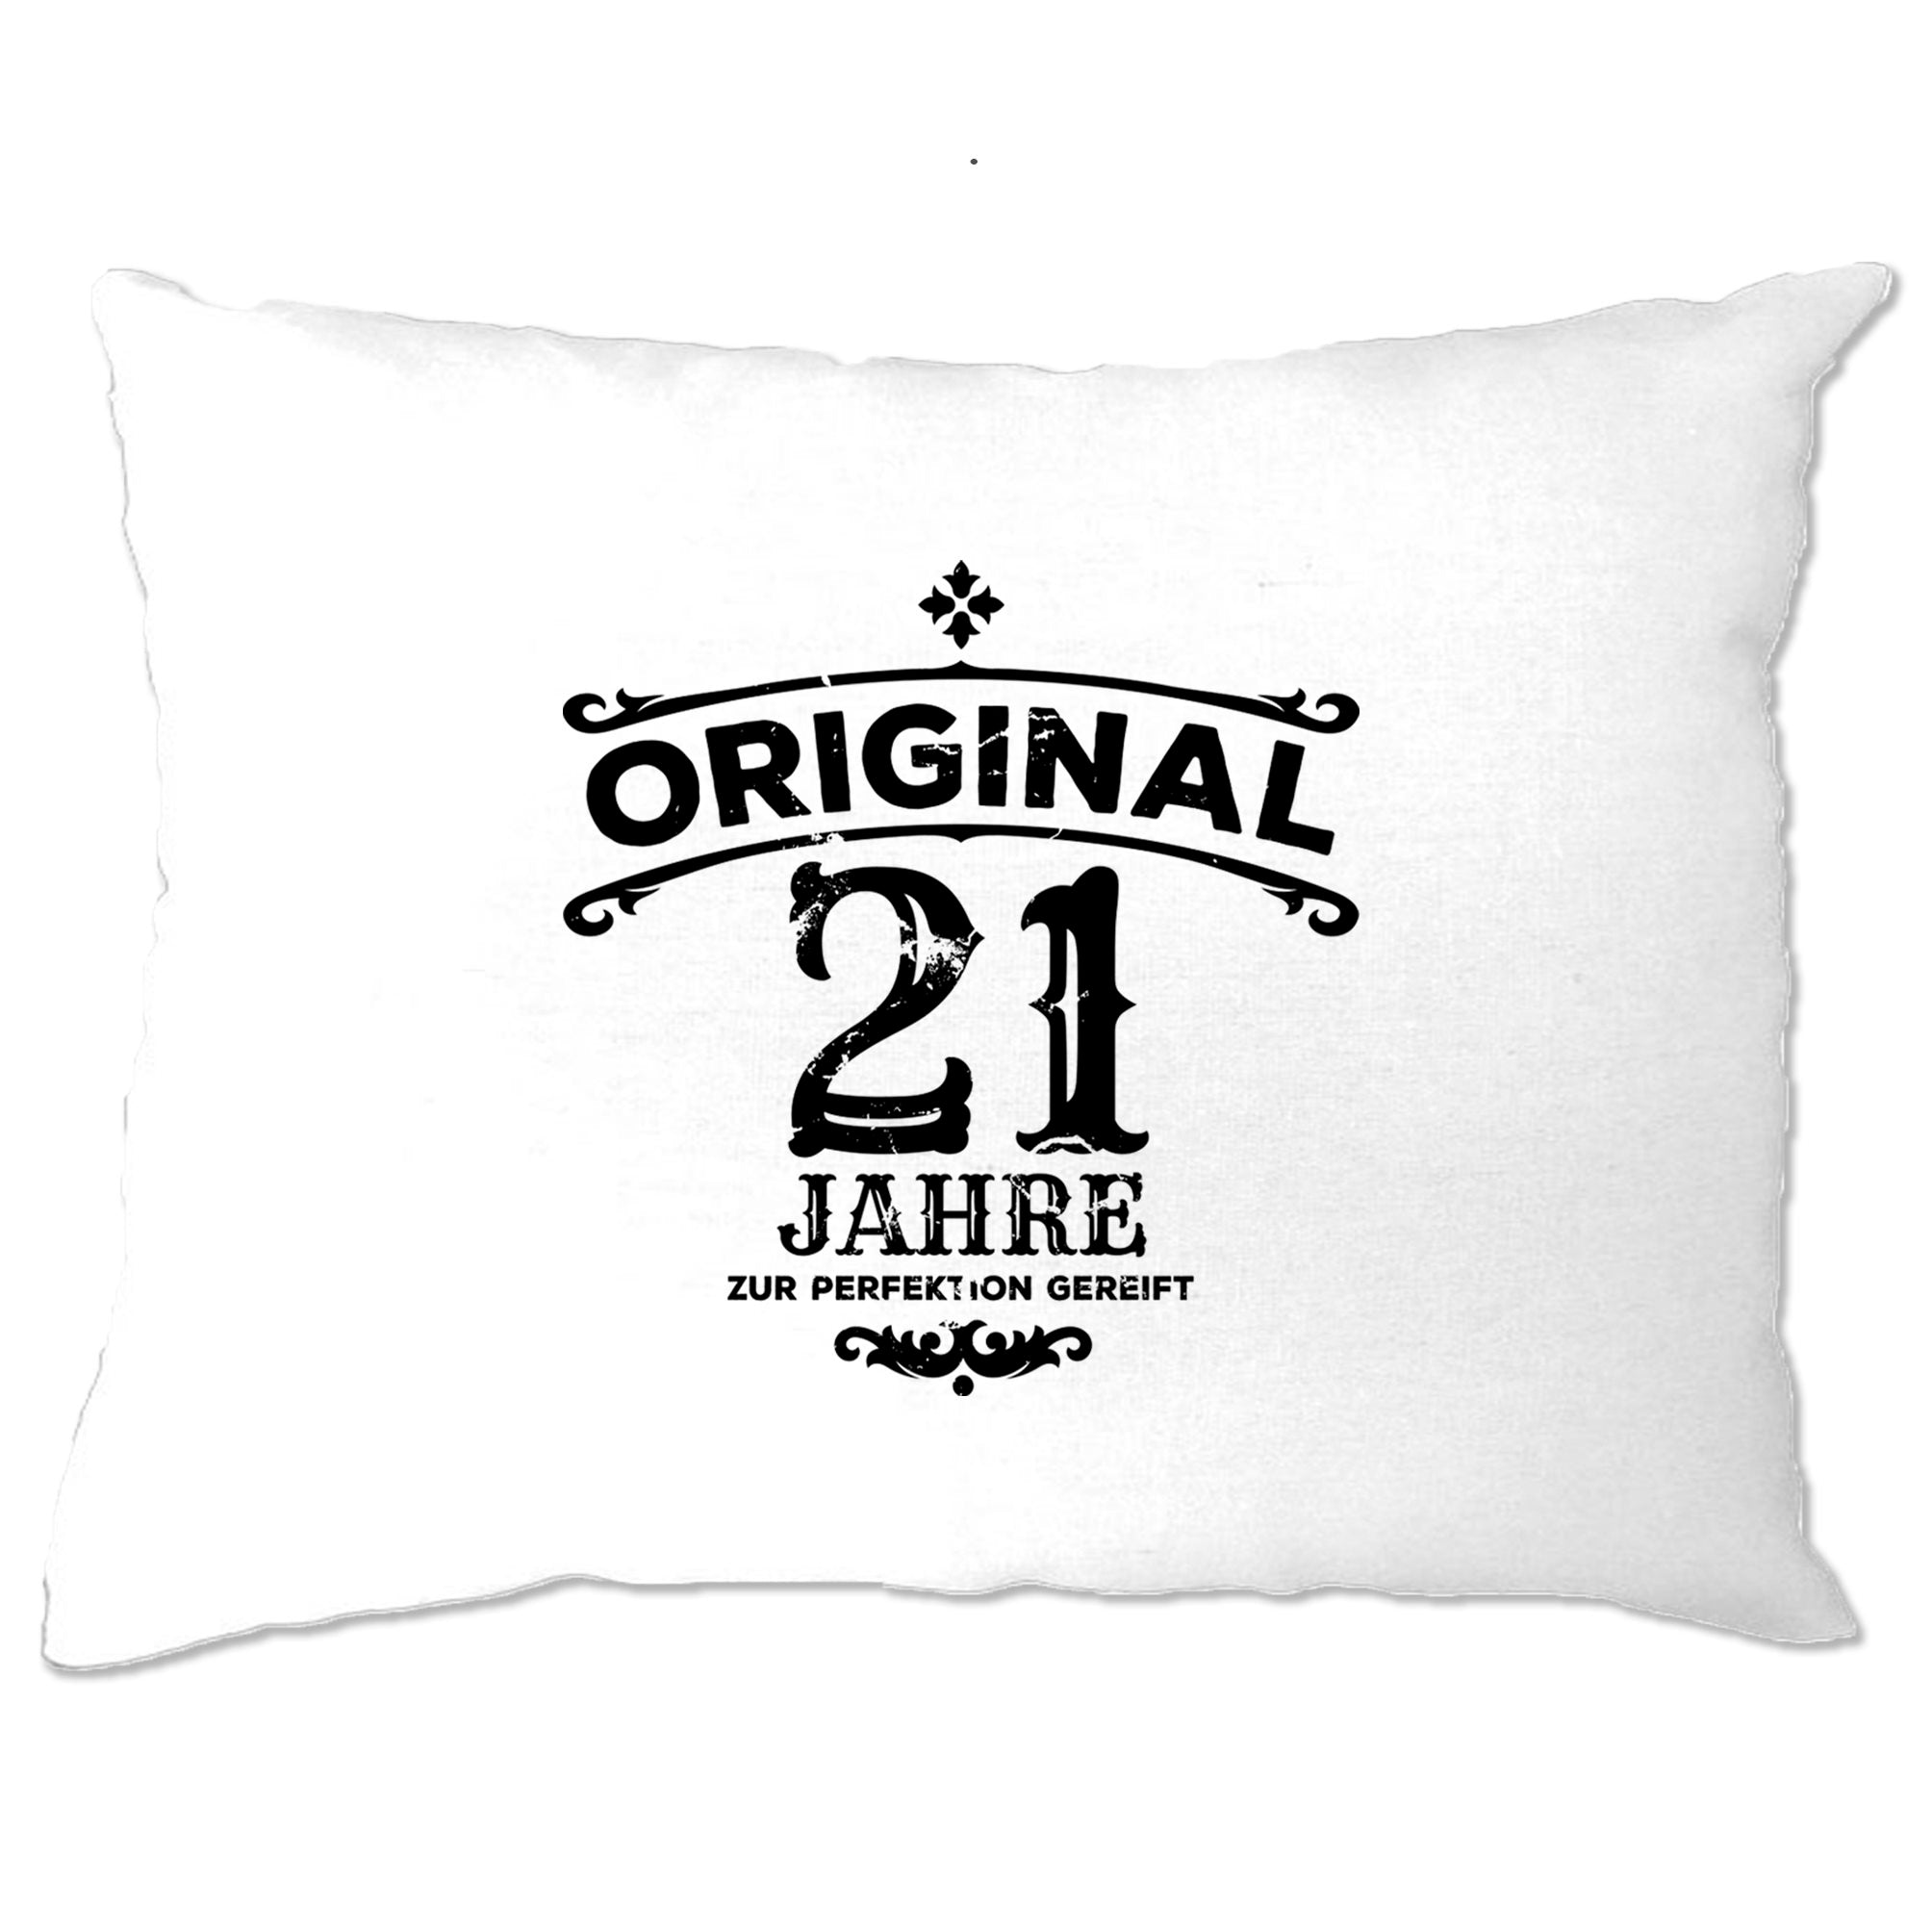 21st Birthday Pillow Case Original Aged Years Twenty One